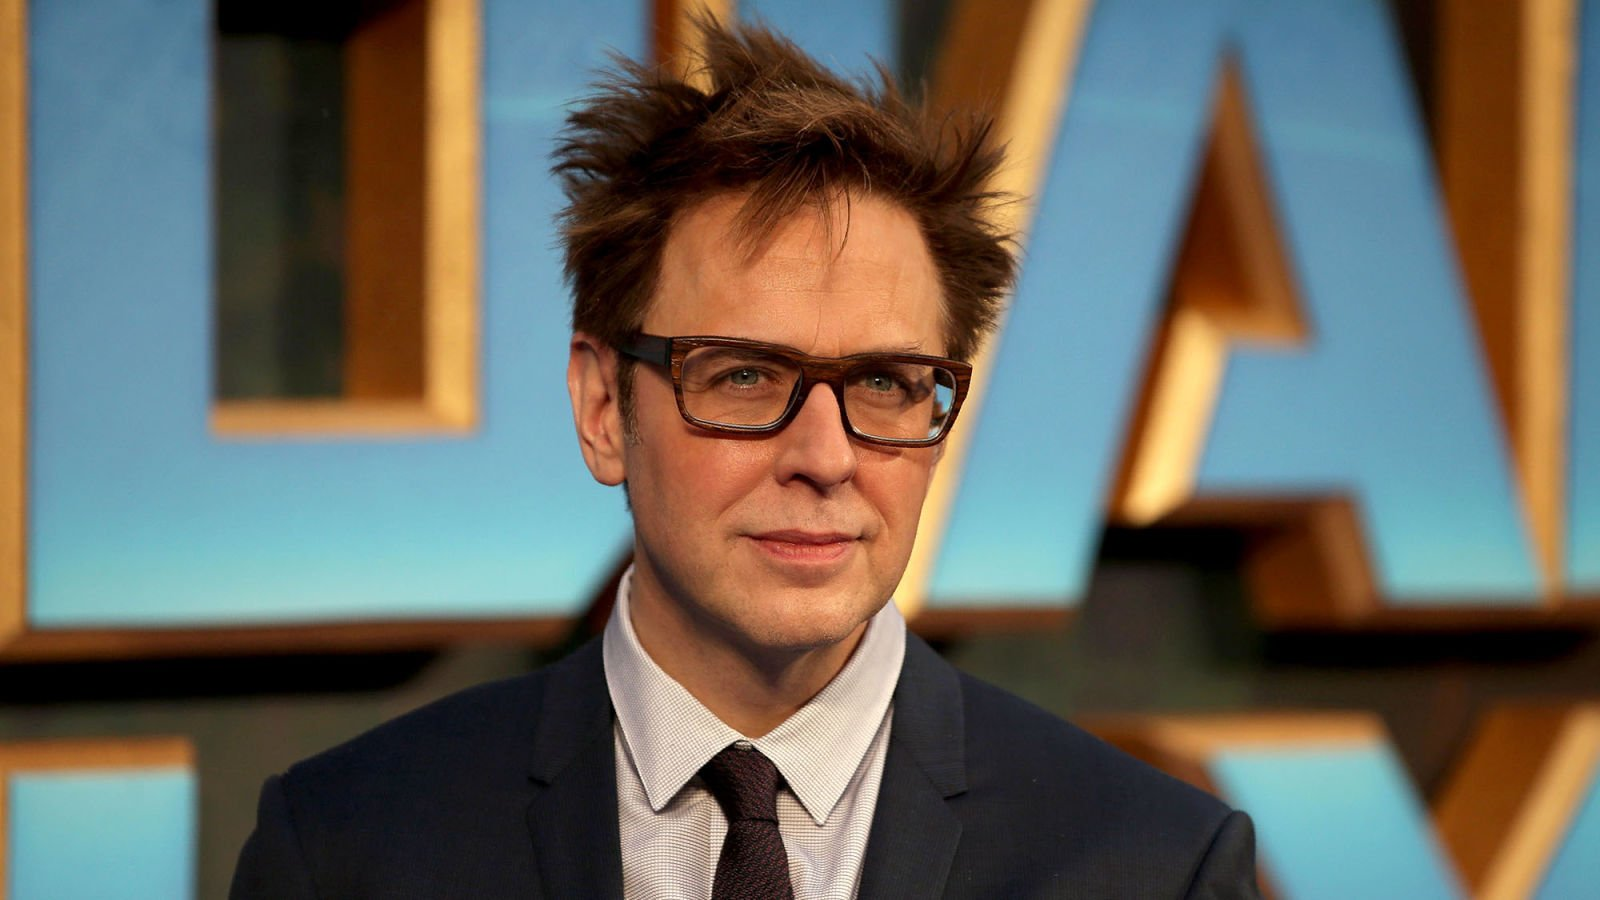 Disney Rehires Director James Gunn As Part Of Company-Wide Push Towards Embracing Pedophilia https://t.co/rN0LNIve0R https://t.co/RW4Madv2fk